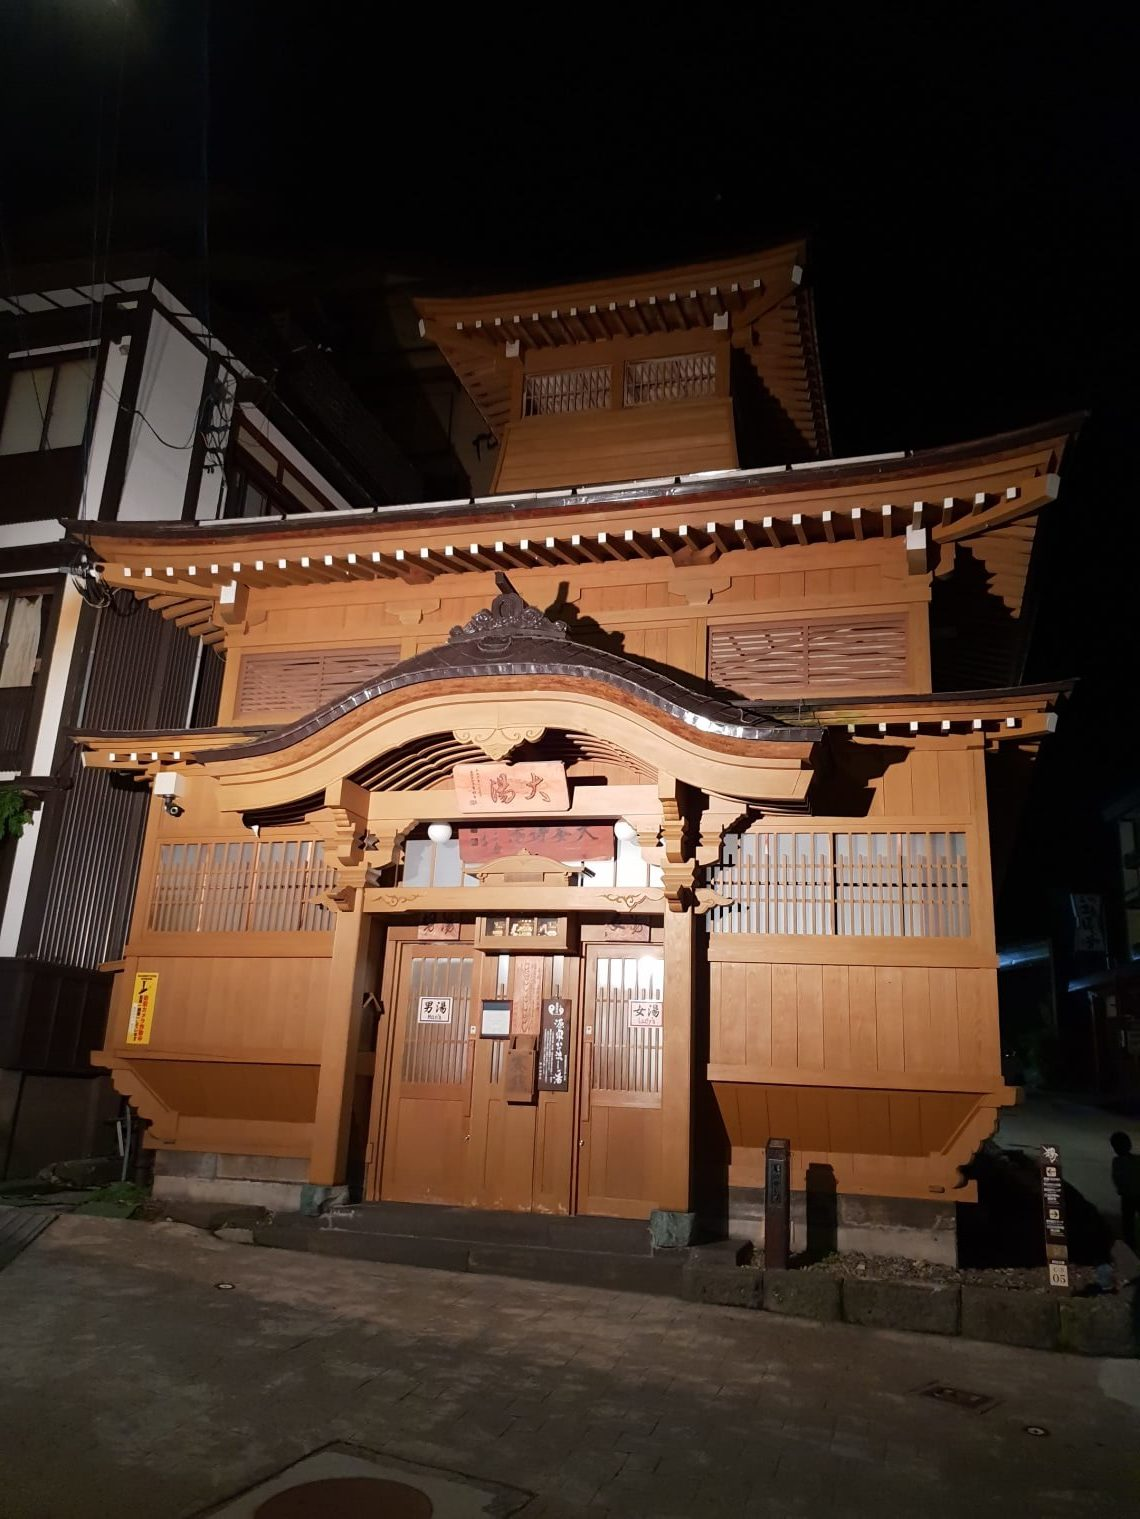 One of Nozawa's many public bath houses.